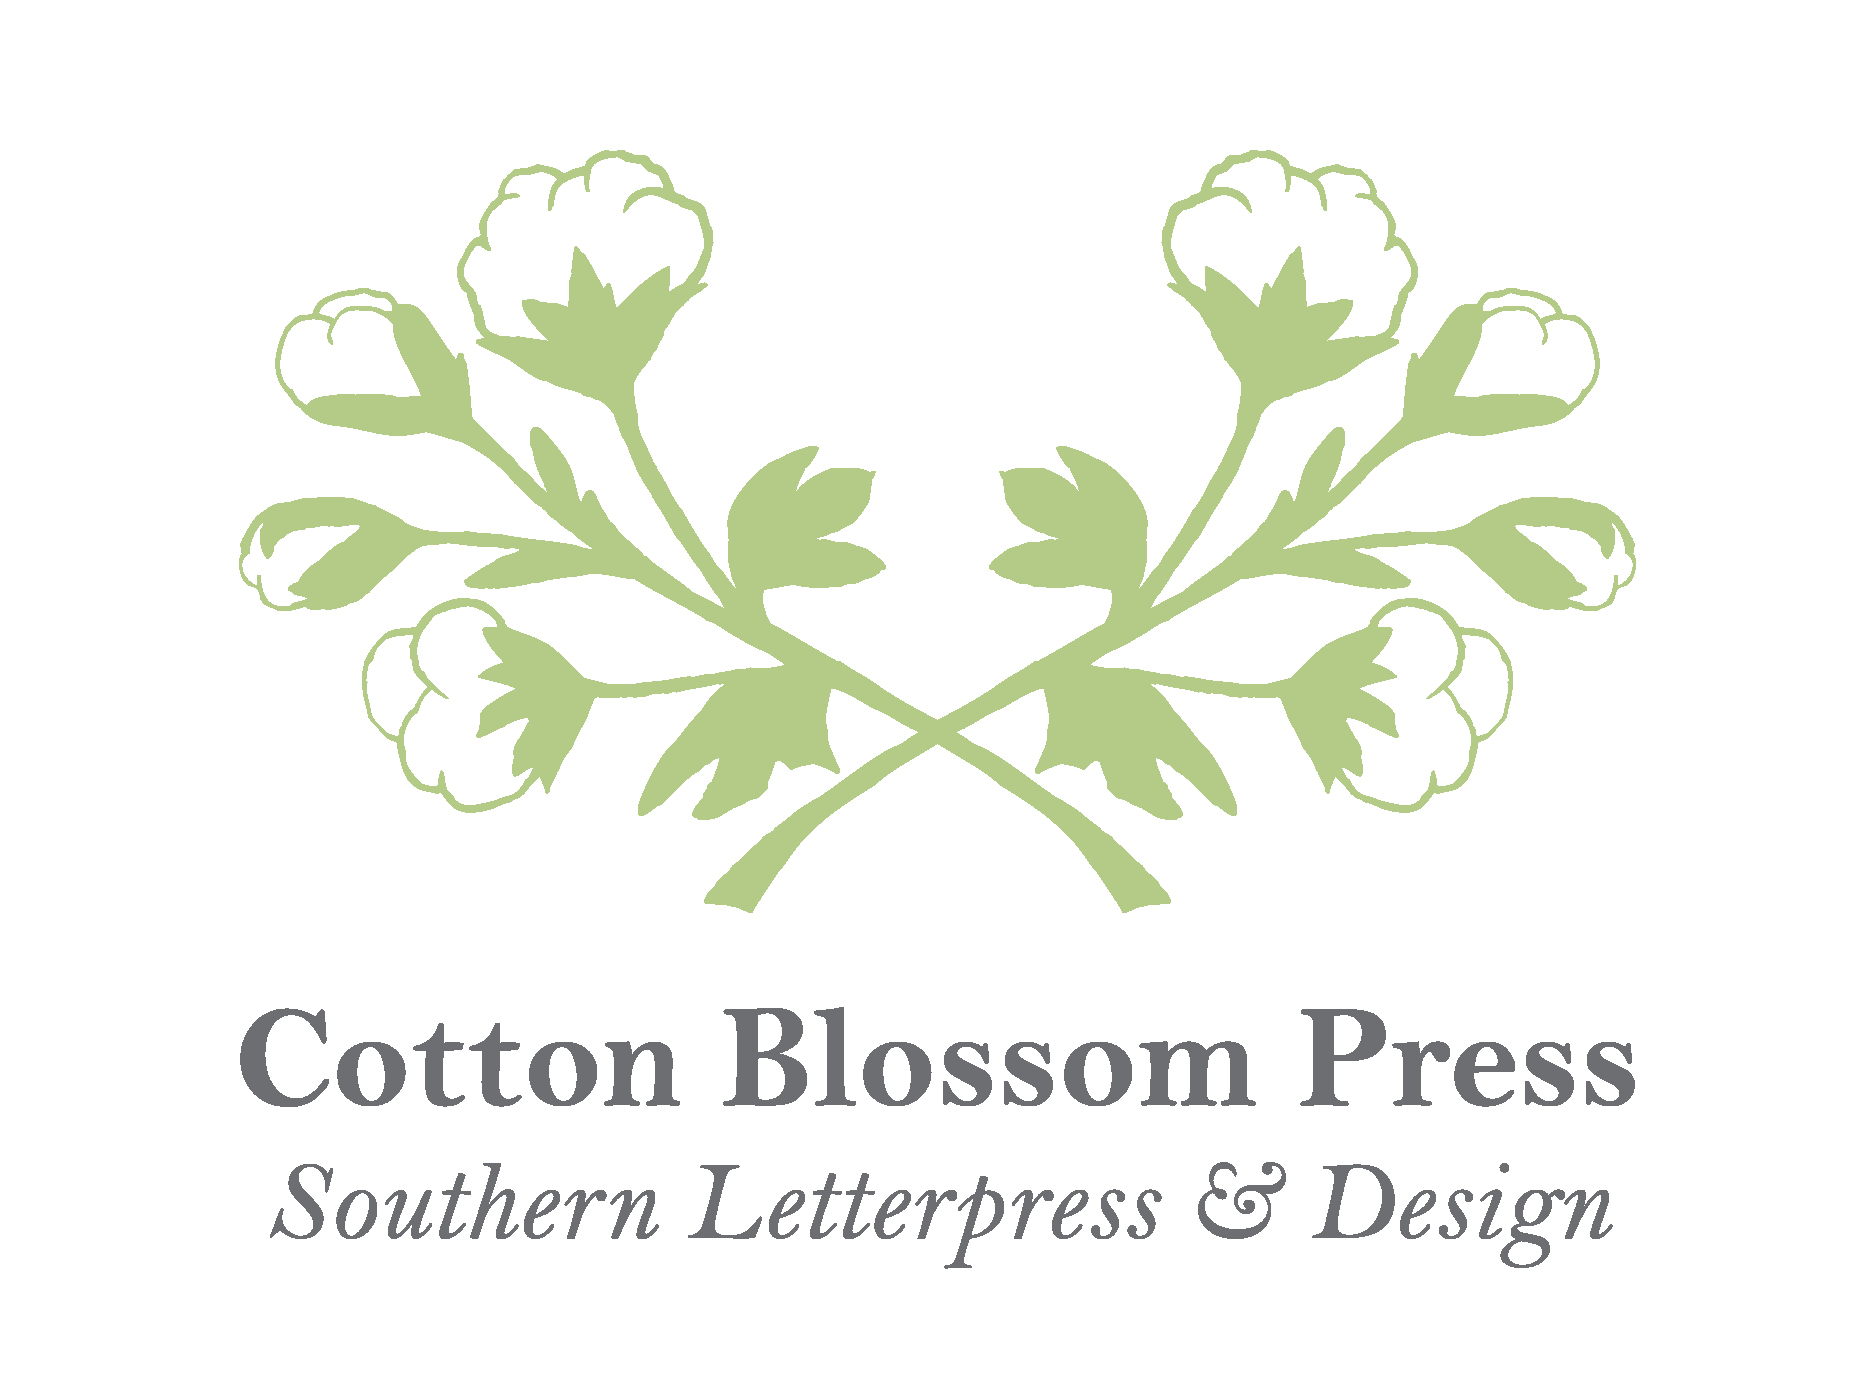 CottonBlossomPress